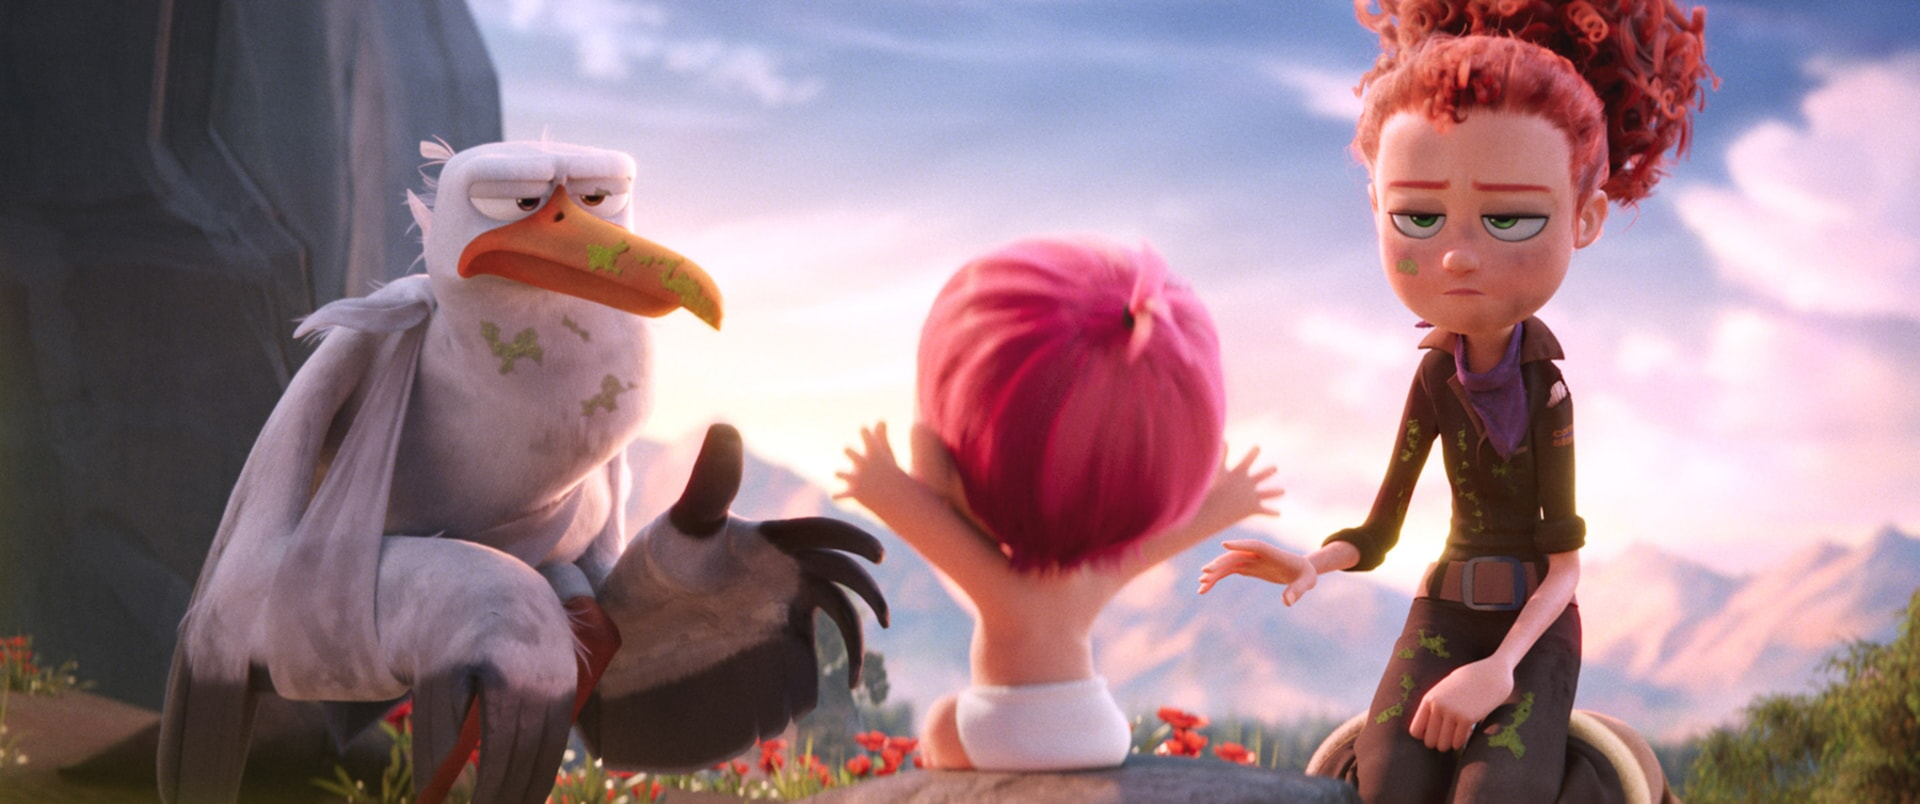 "Junior voiced by ANDY SAMBERG, the baby and Tulip voiced by KATIE CROWN in the new animated adventure ""STORKS,"" a Warner Bros. Pictures release."